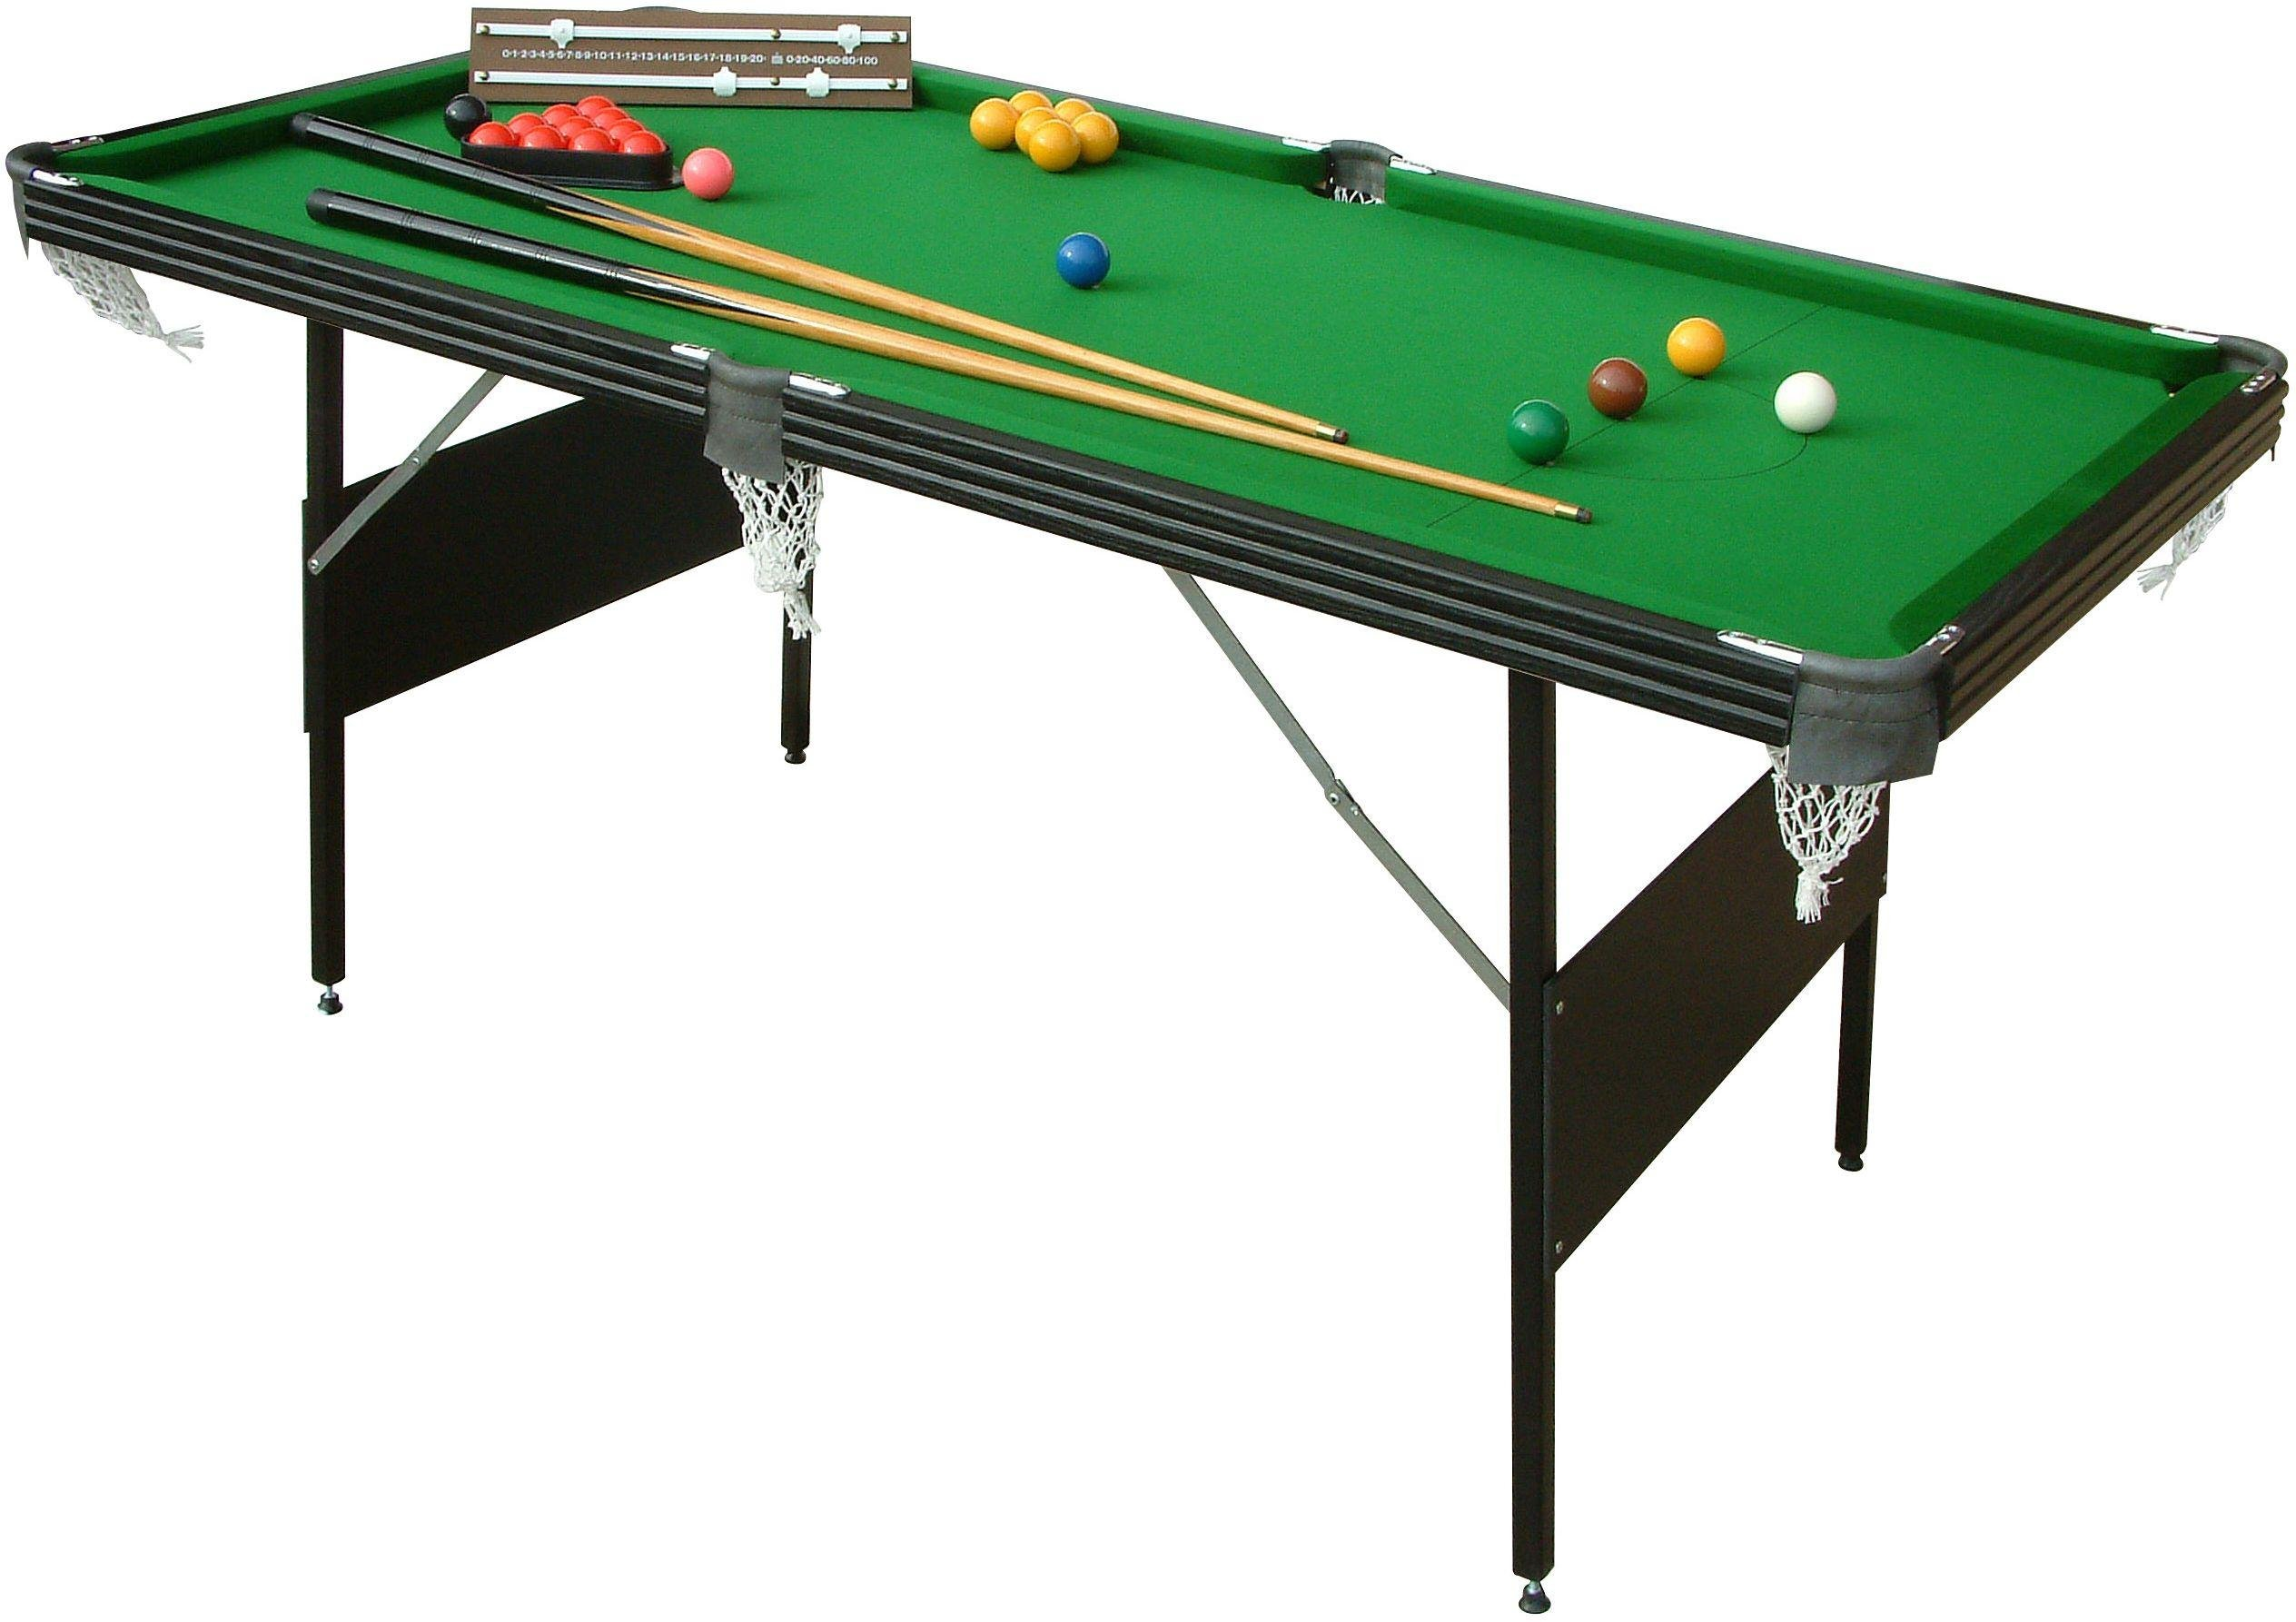 Mightymast - Crucible 6ft Foldup Snooker/Pool Table